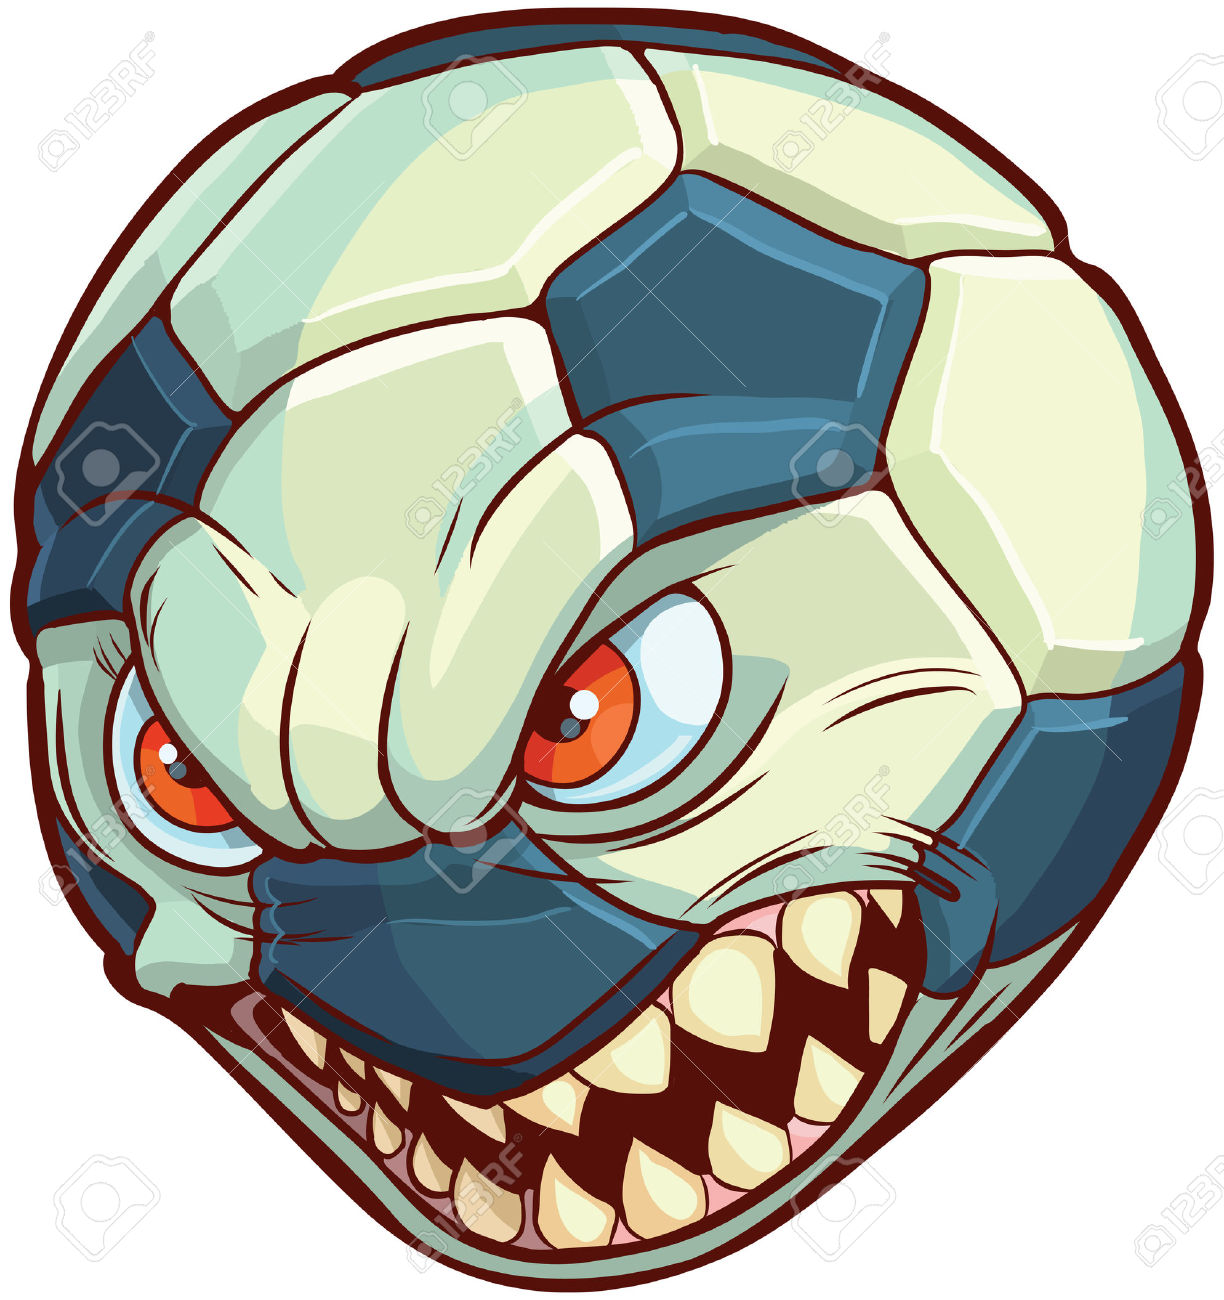 Cartoon Clip Art Illustration Of A Soccer Ball Or Football With.